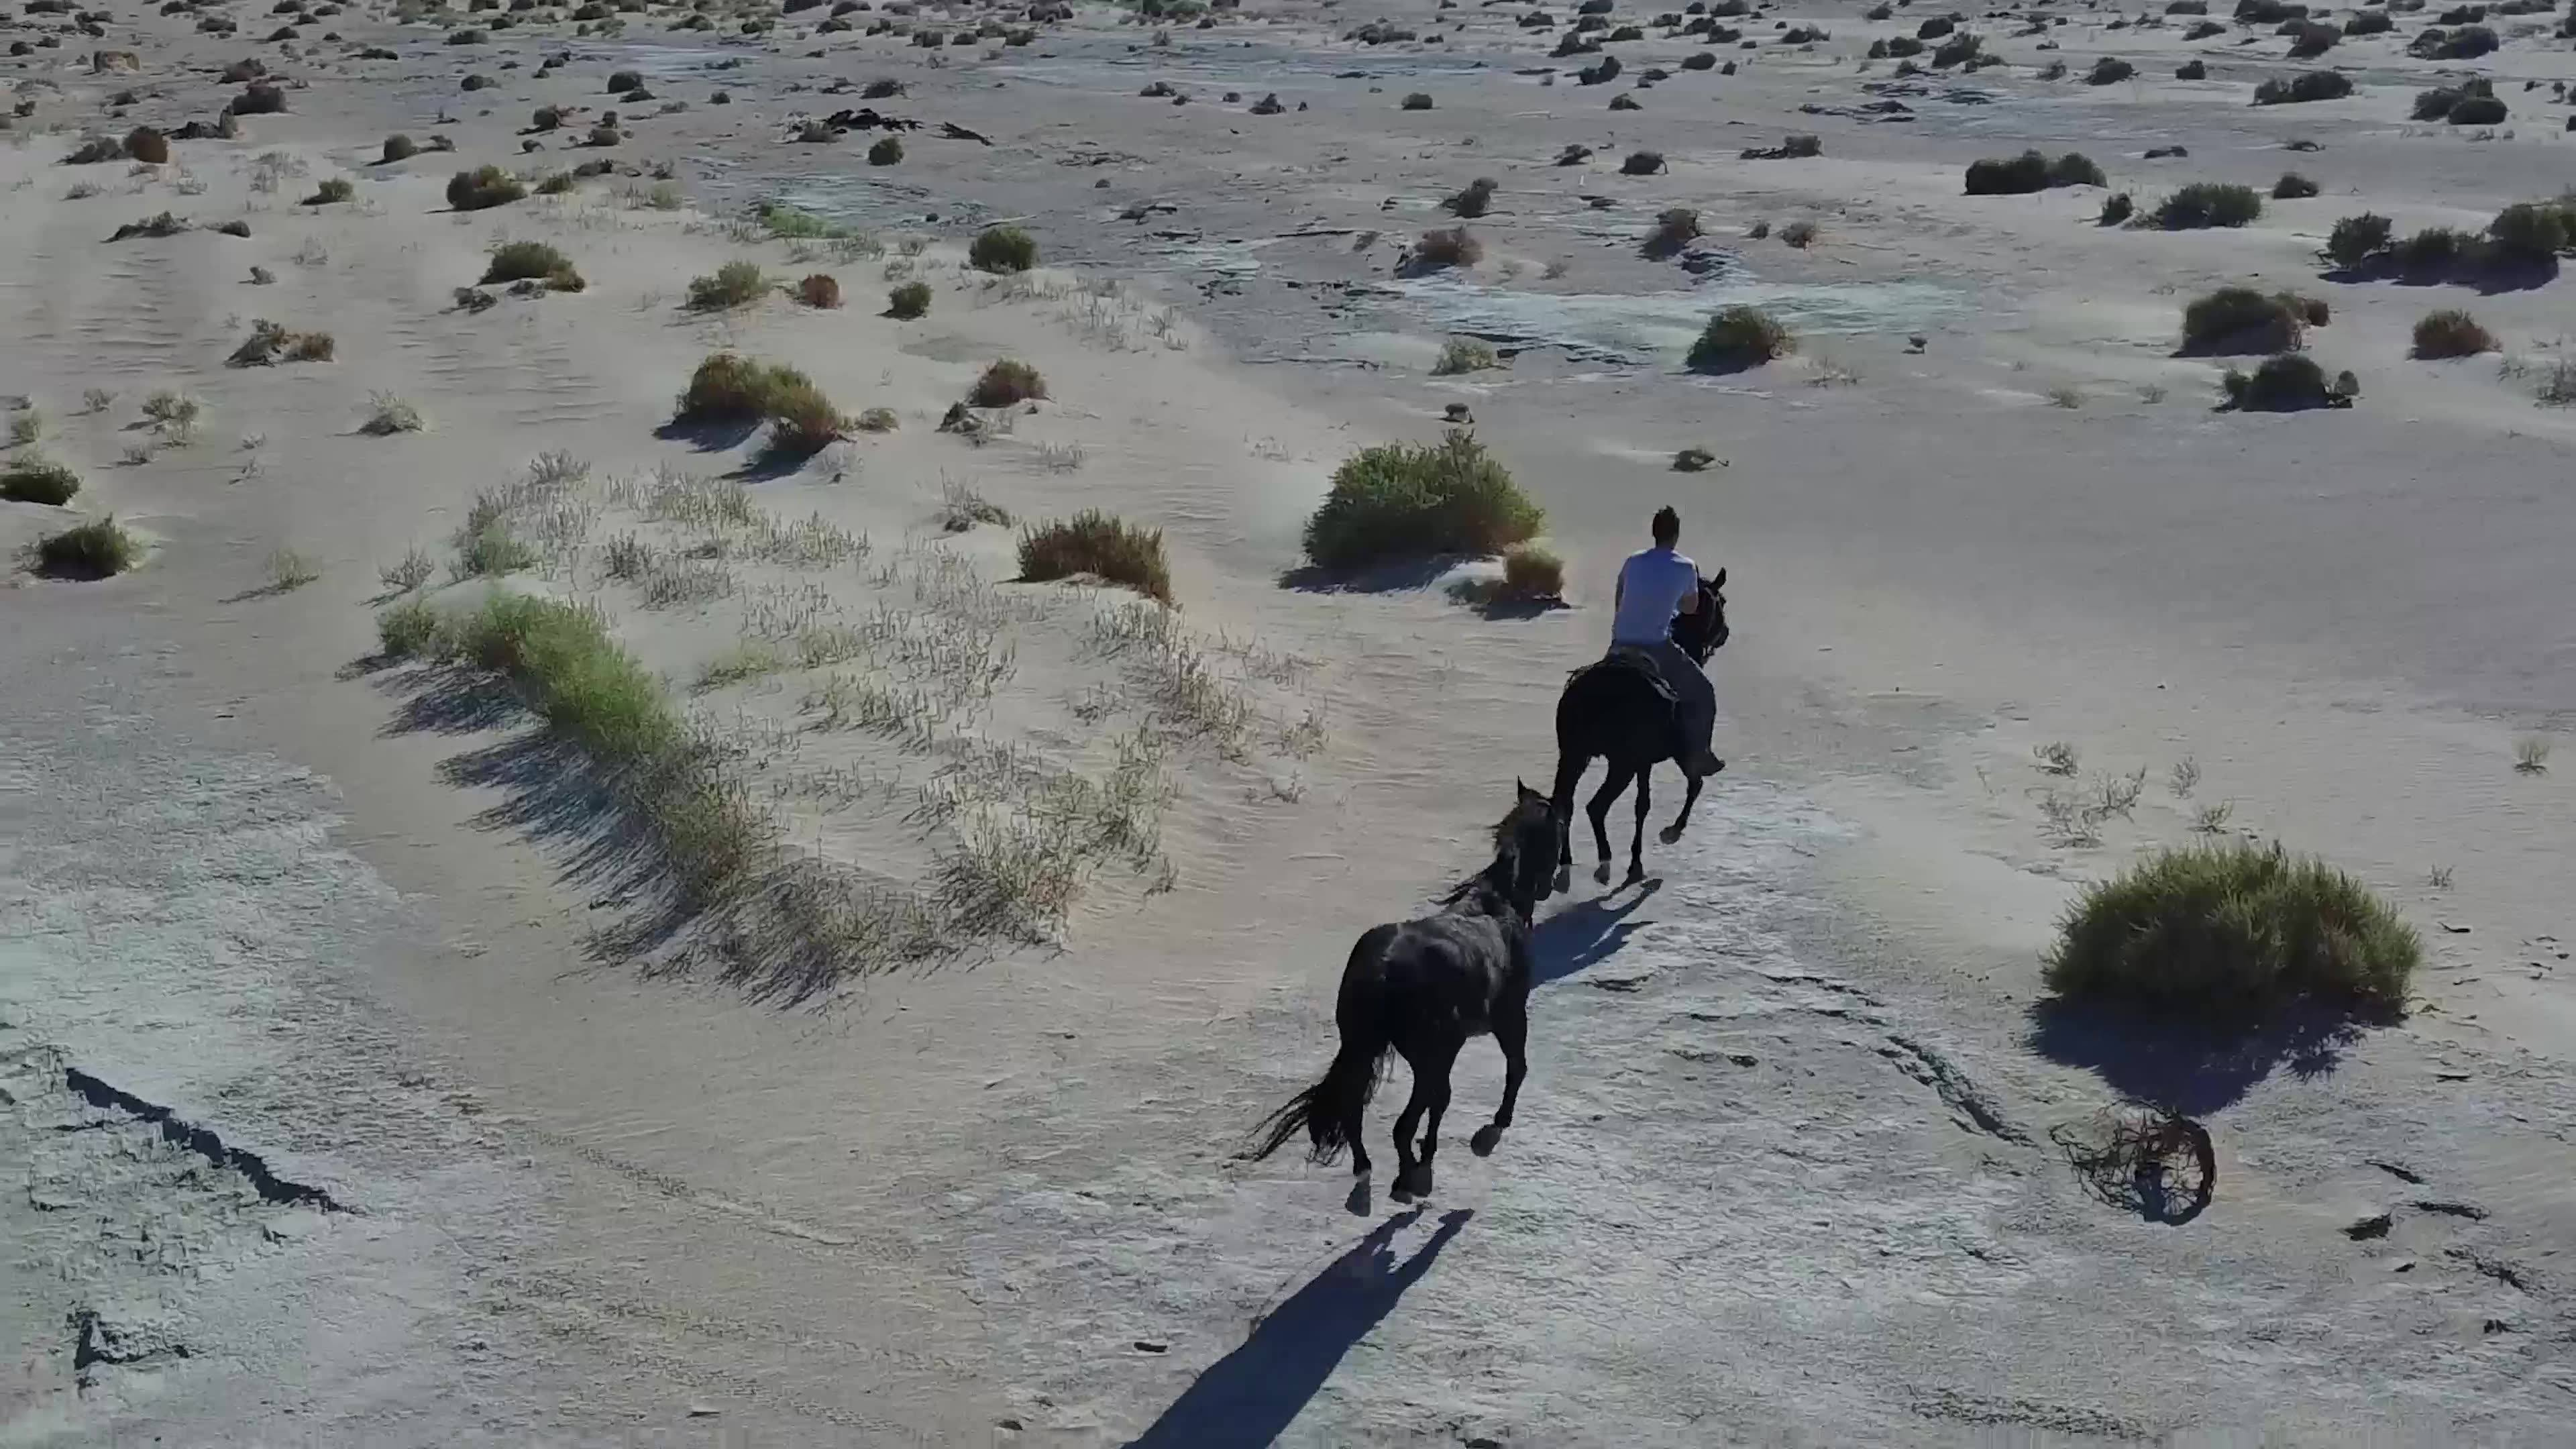 Horse Ride in the Desert